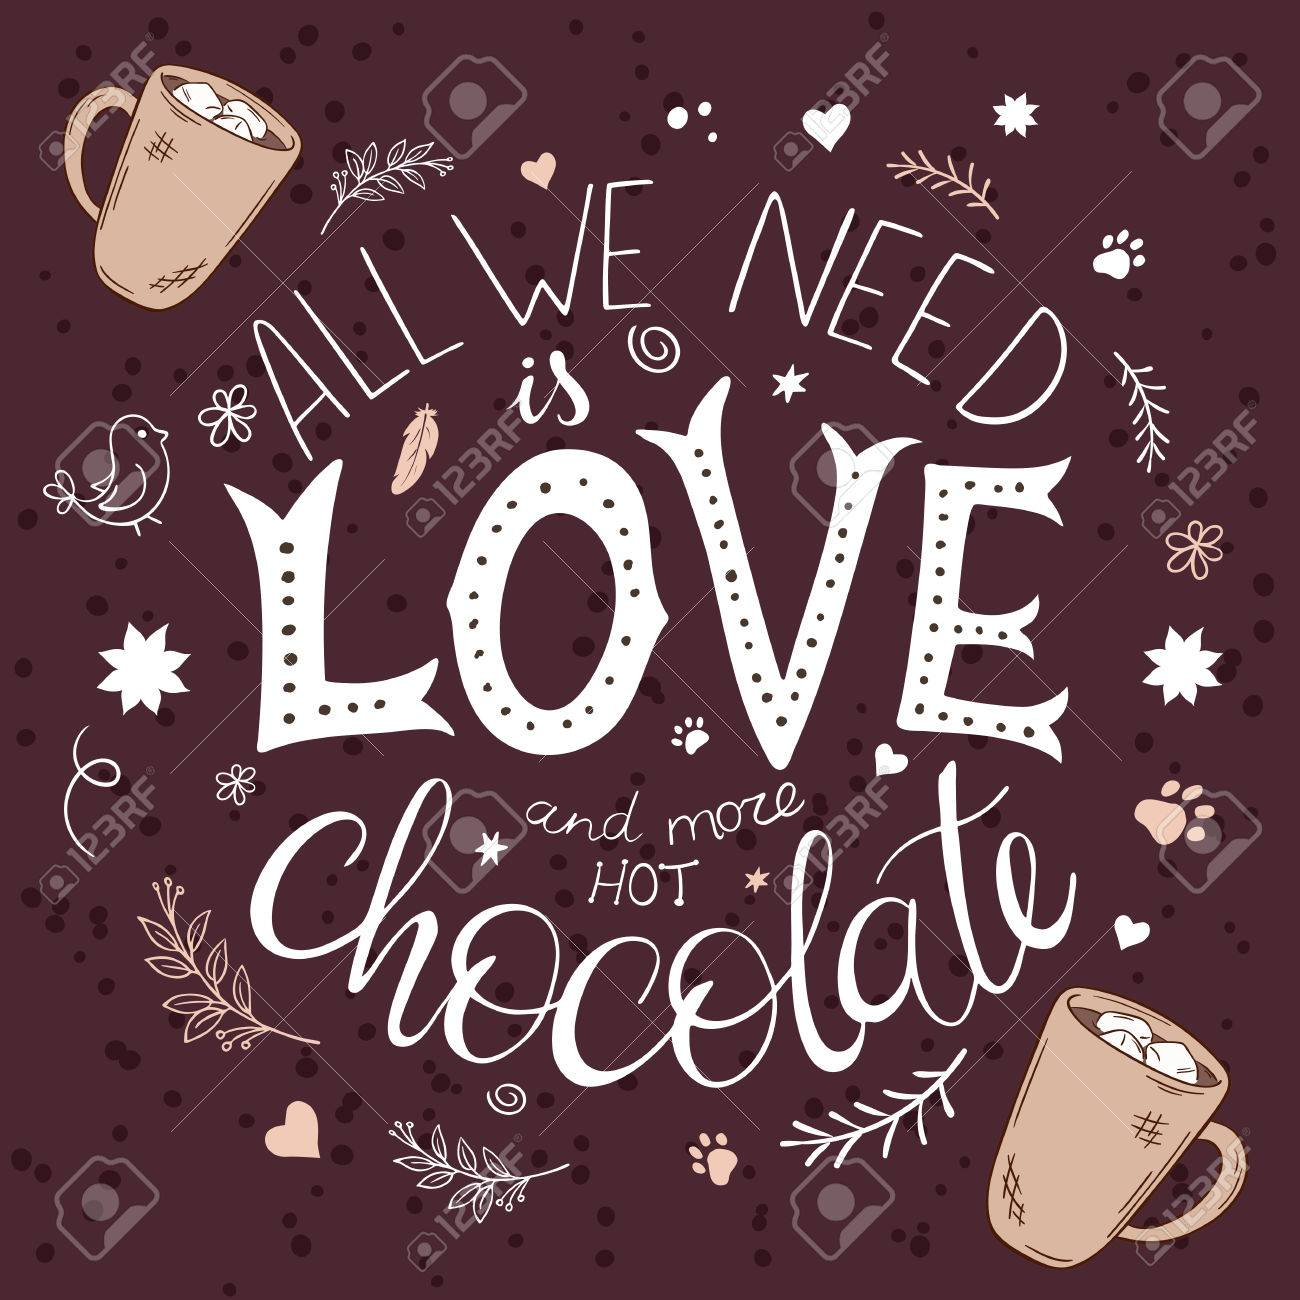 vector hand drawn lettering quote - all we need is love and more hot chocolate with decoration elements - brunches, stars, swirls and flowers